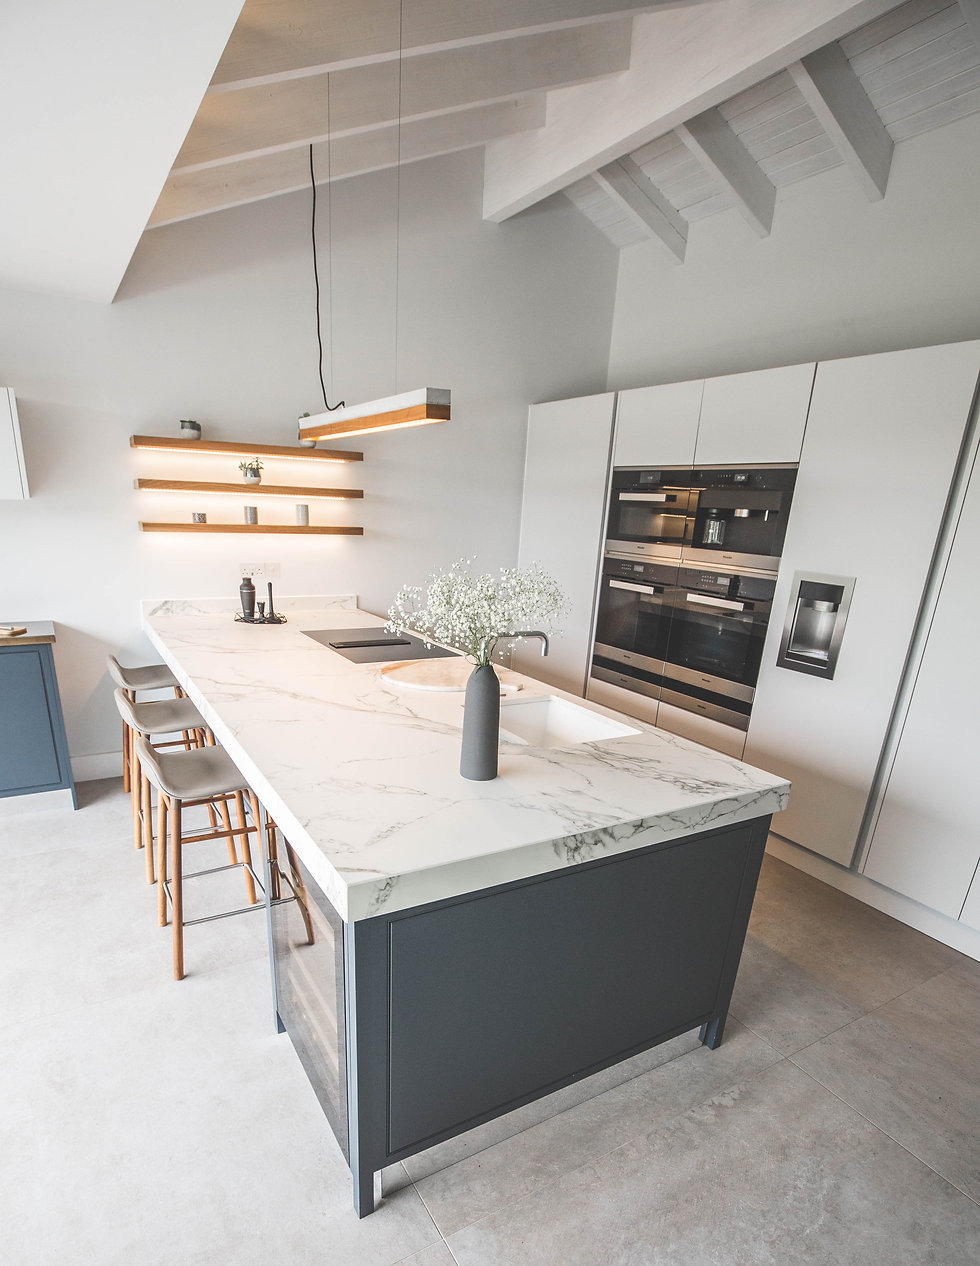 In-Frame and Handleless kitchen design